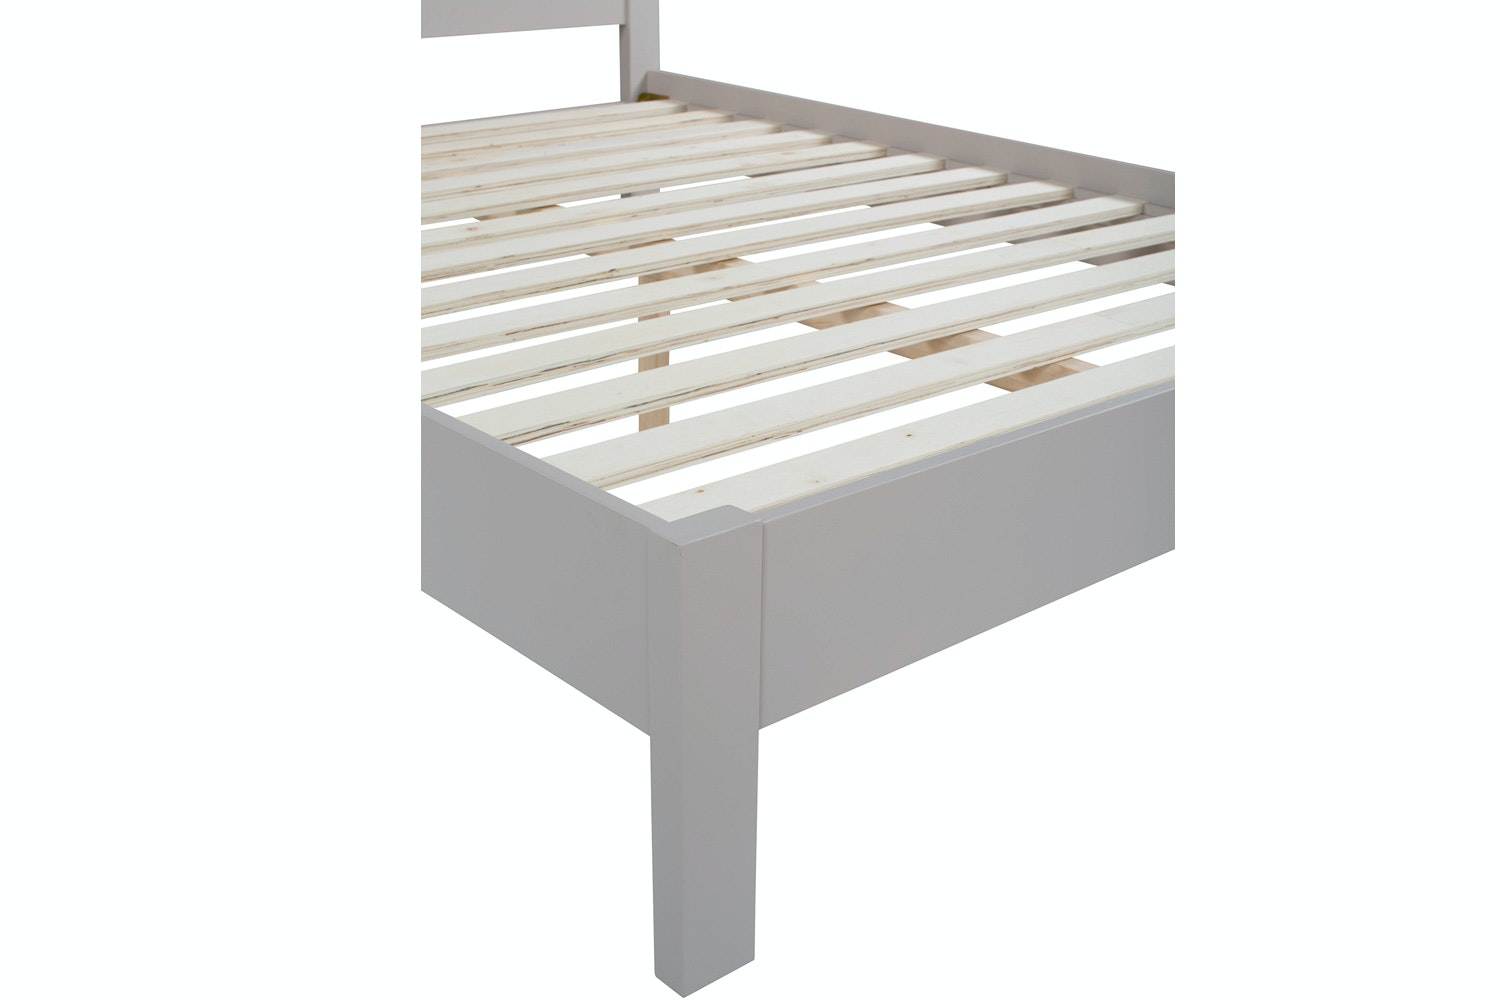 Ascott Wooden Bed Frame